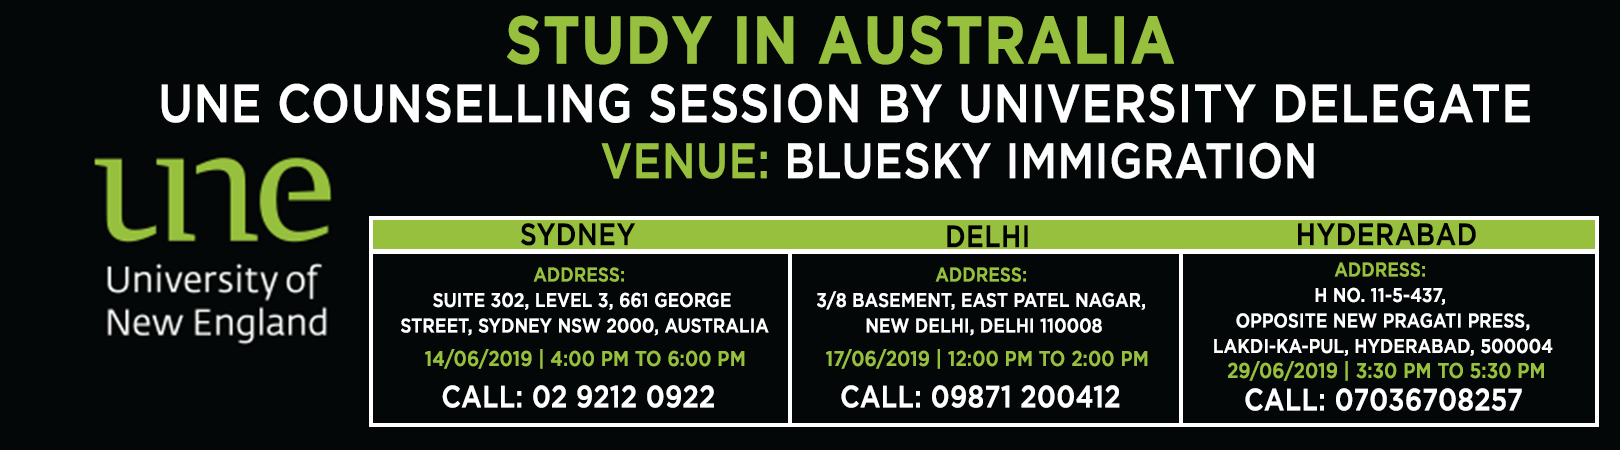 STUDY IN AUSTRALIA | UNE Counselling Session by University delegate